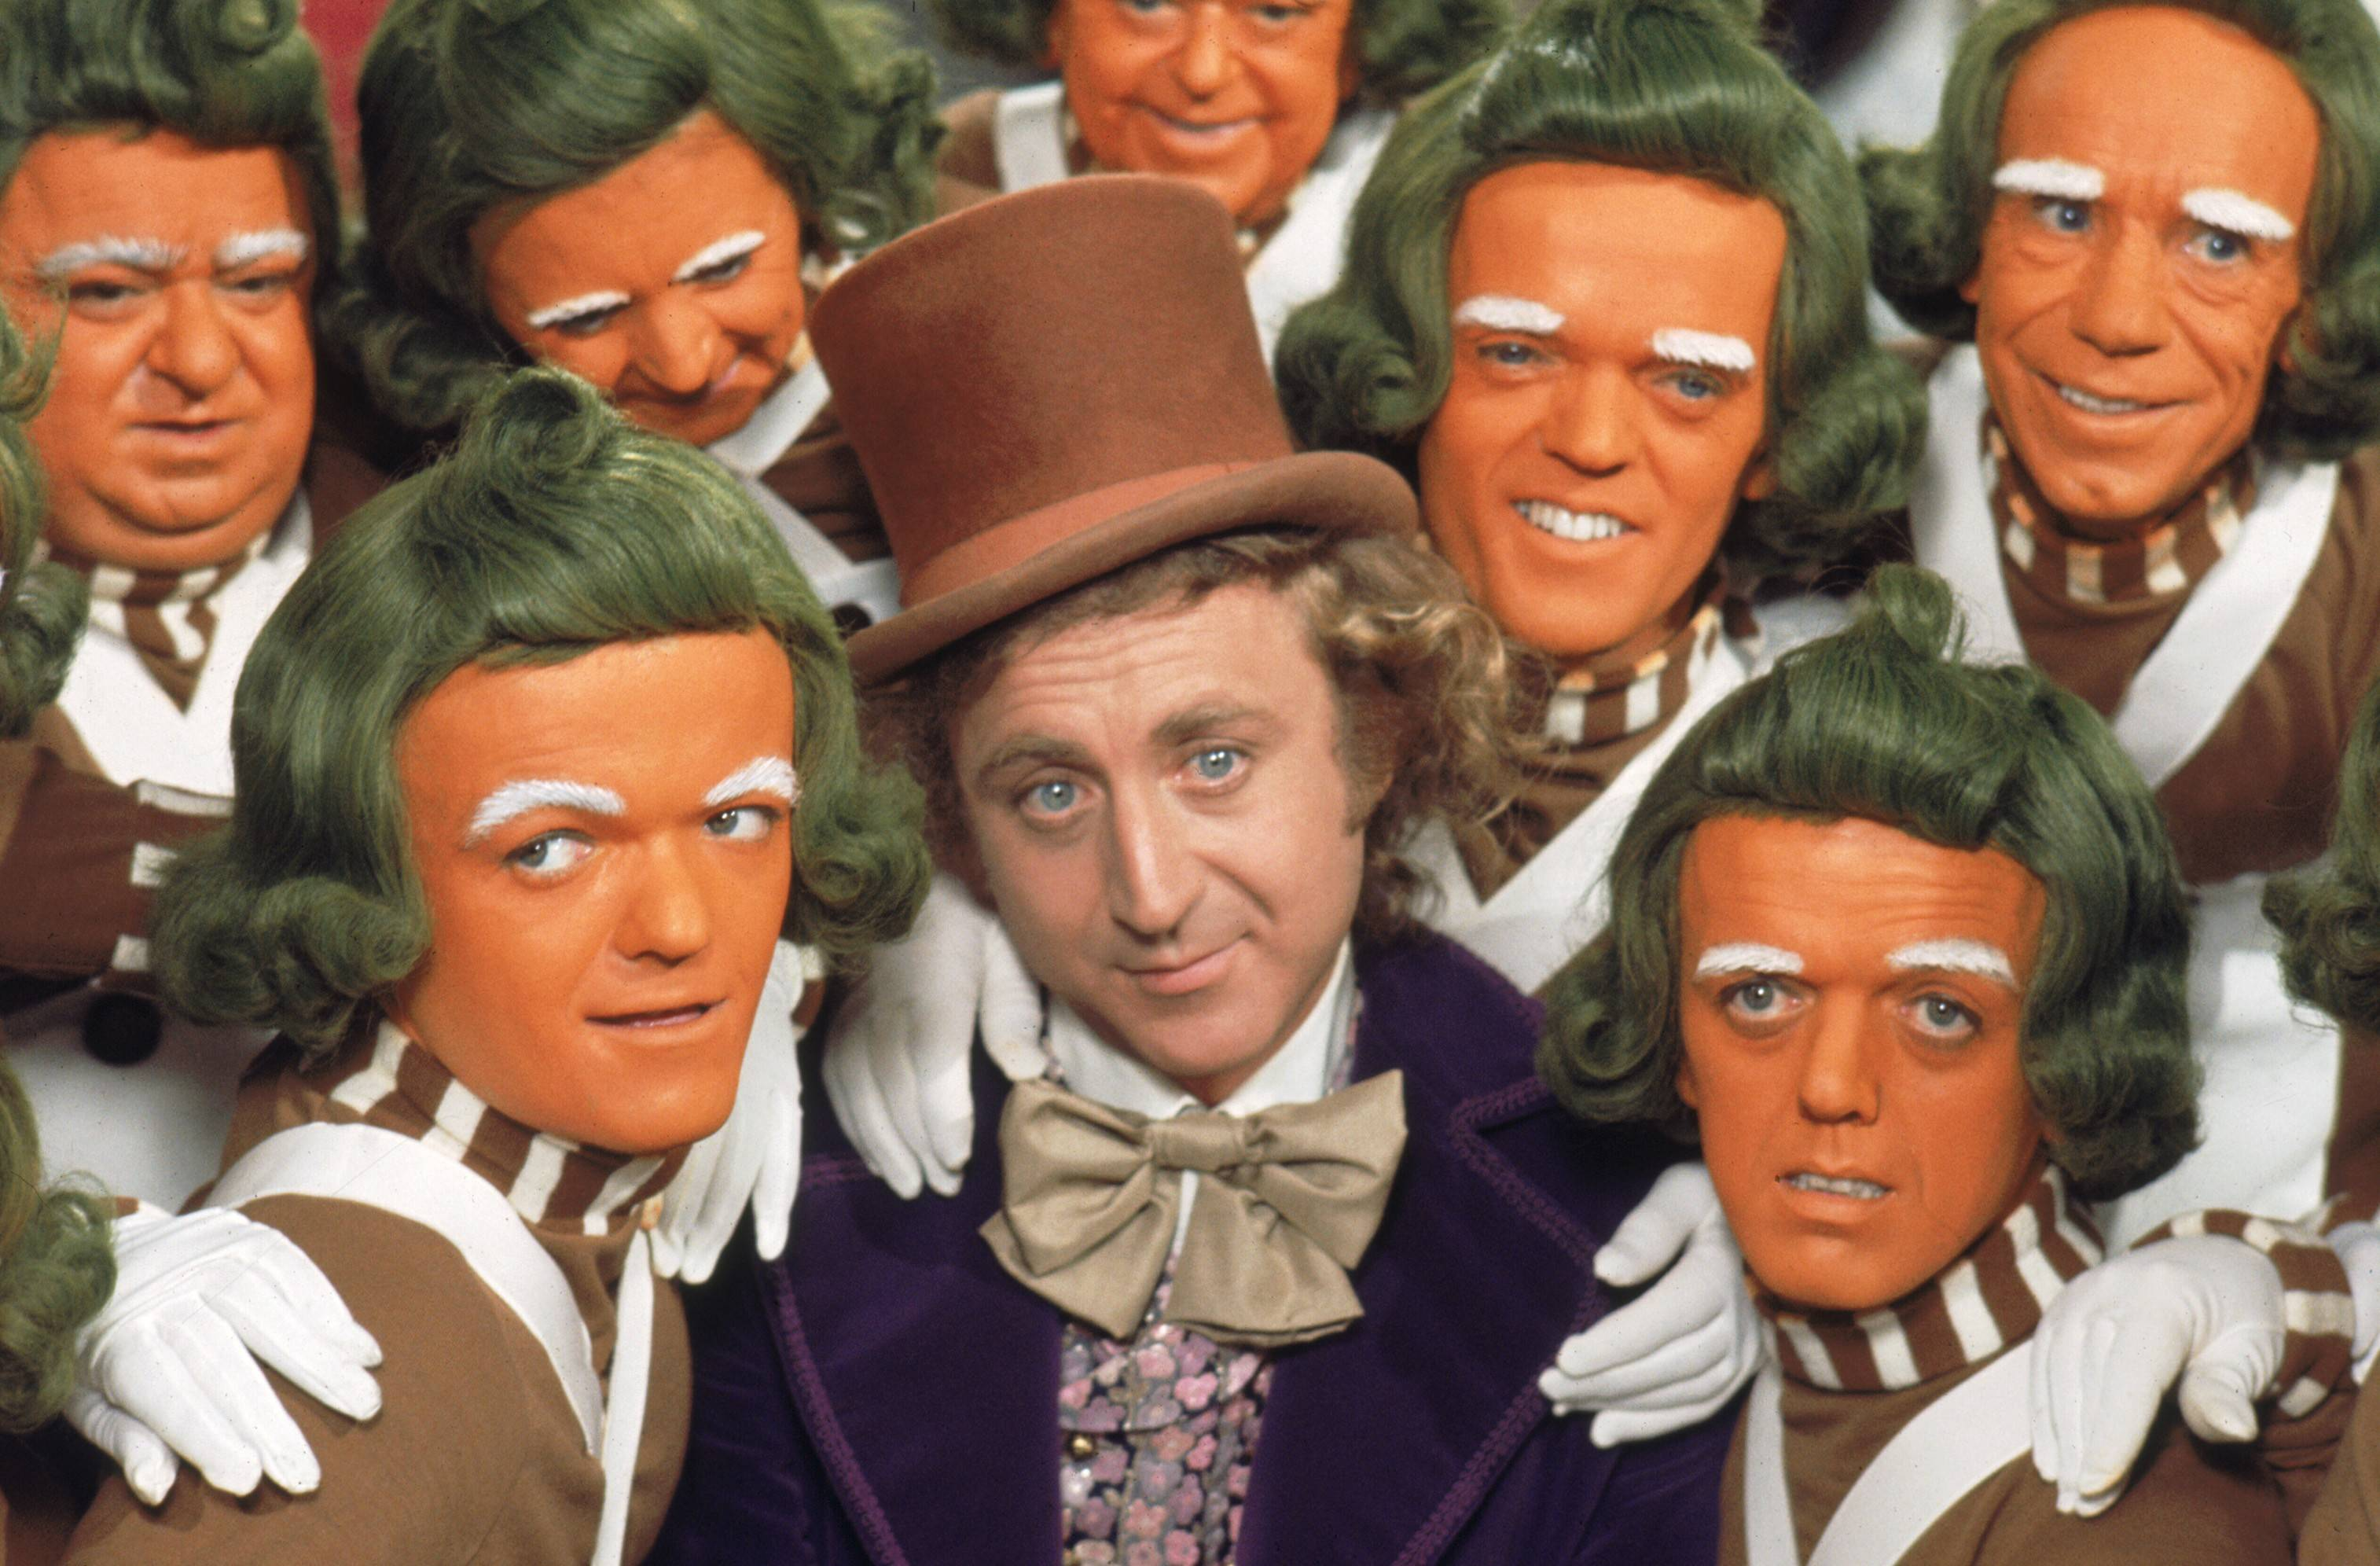 'Willy Wonka' star Gene Wilder dead at 83